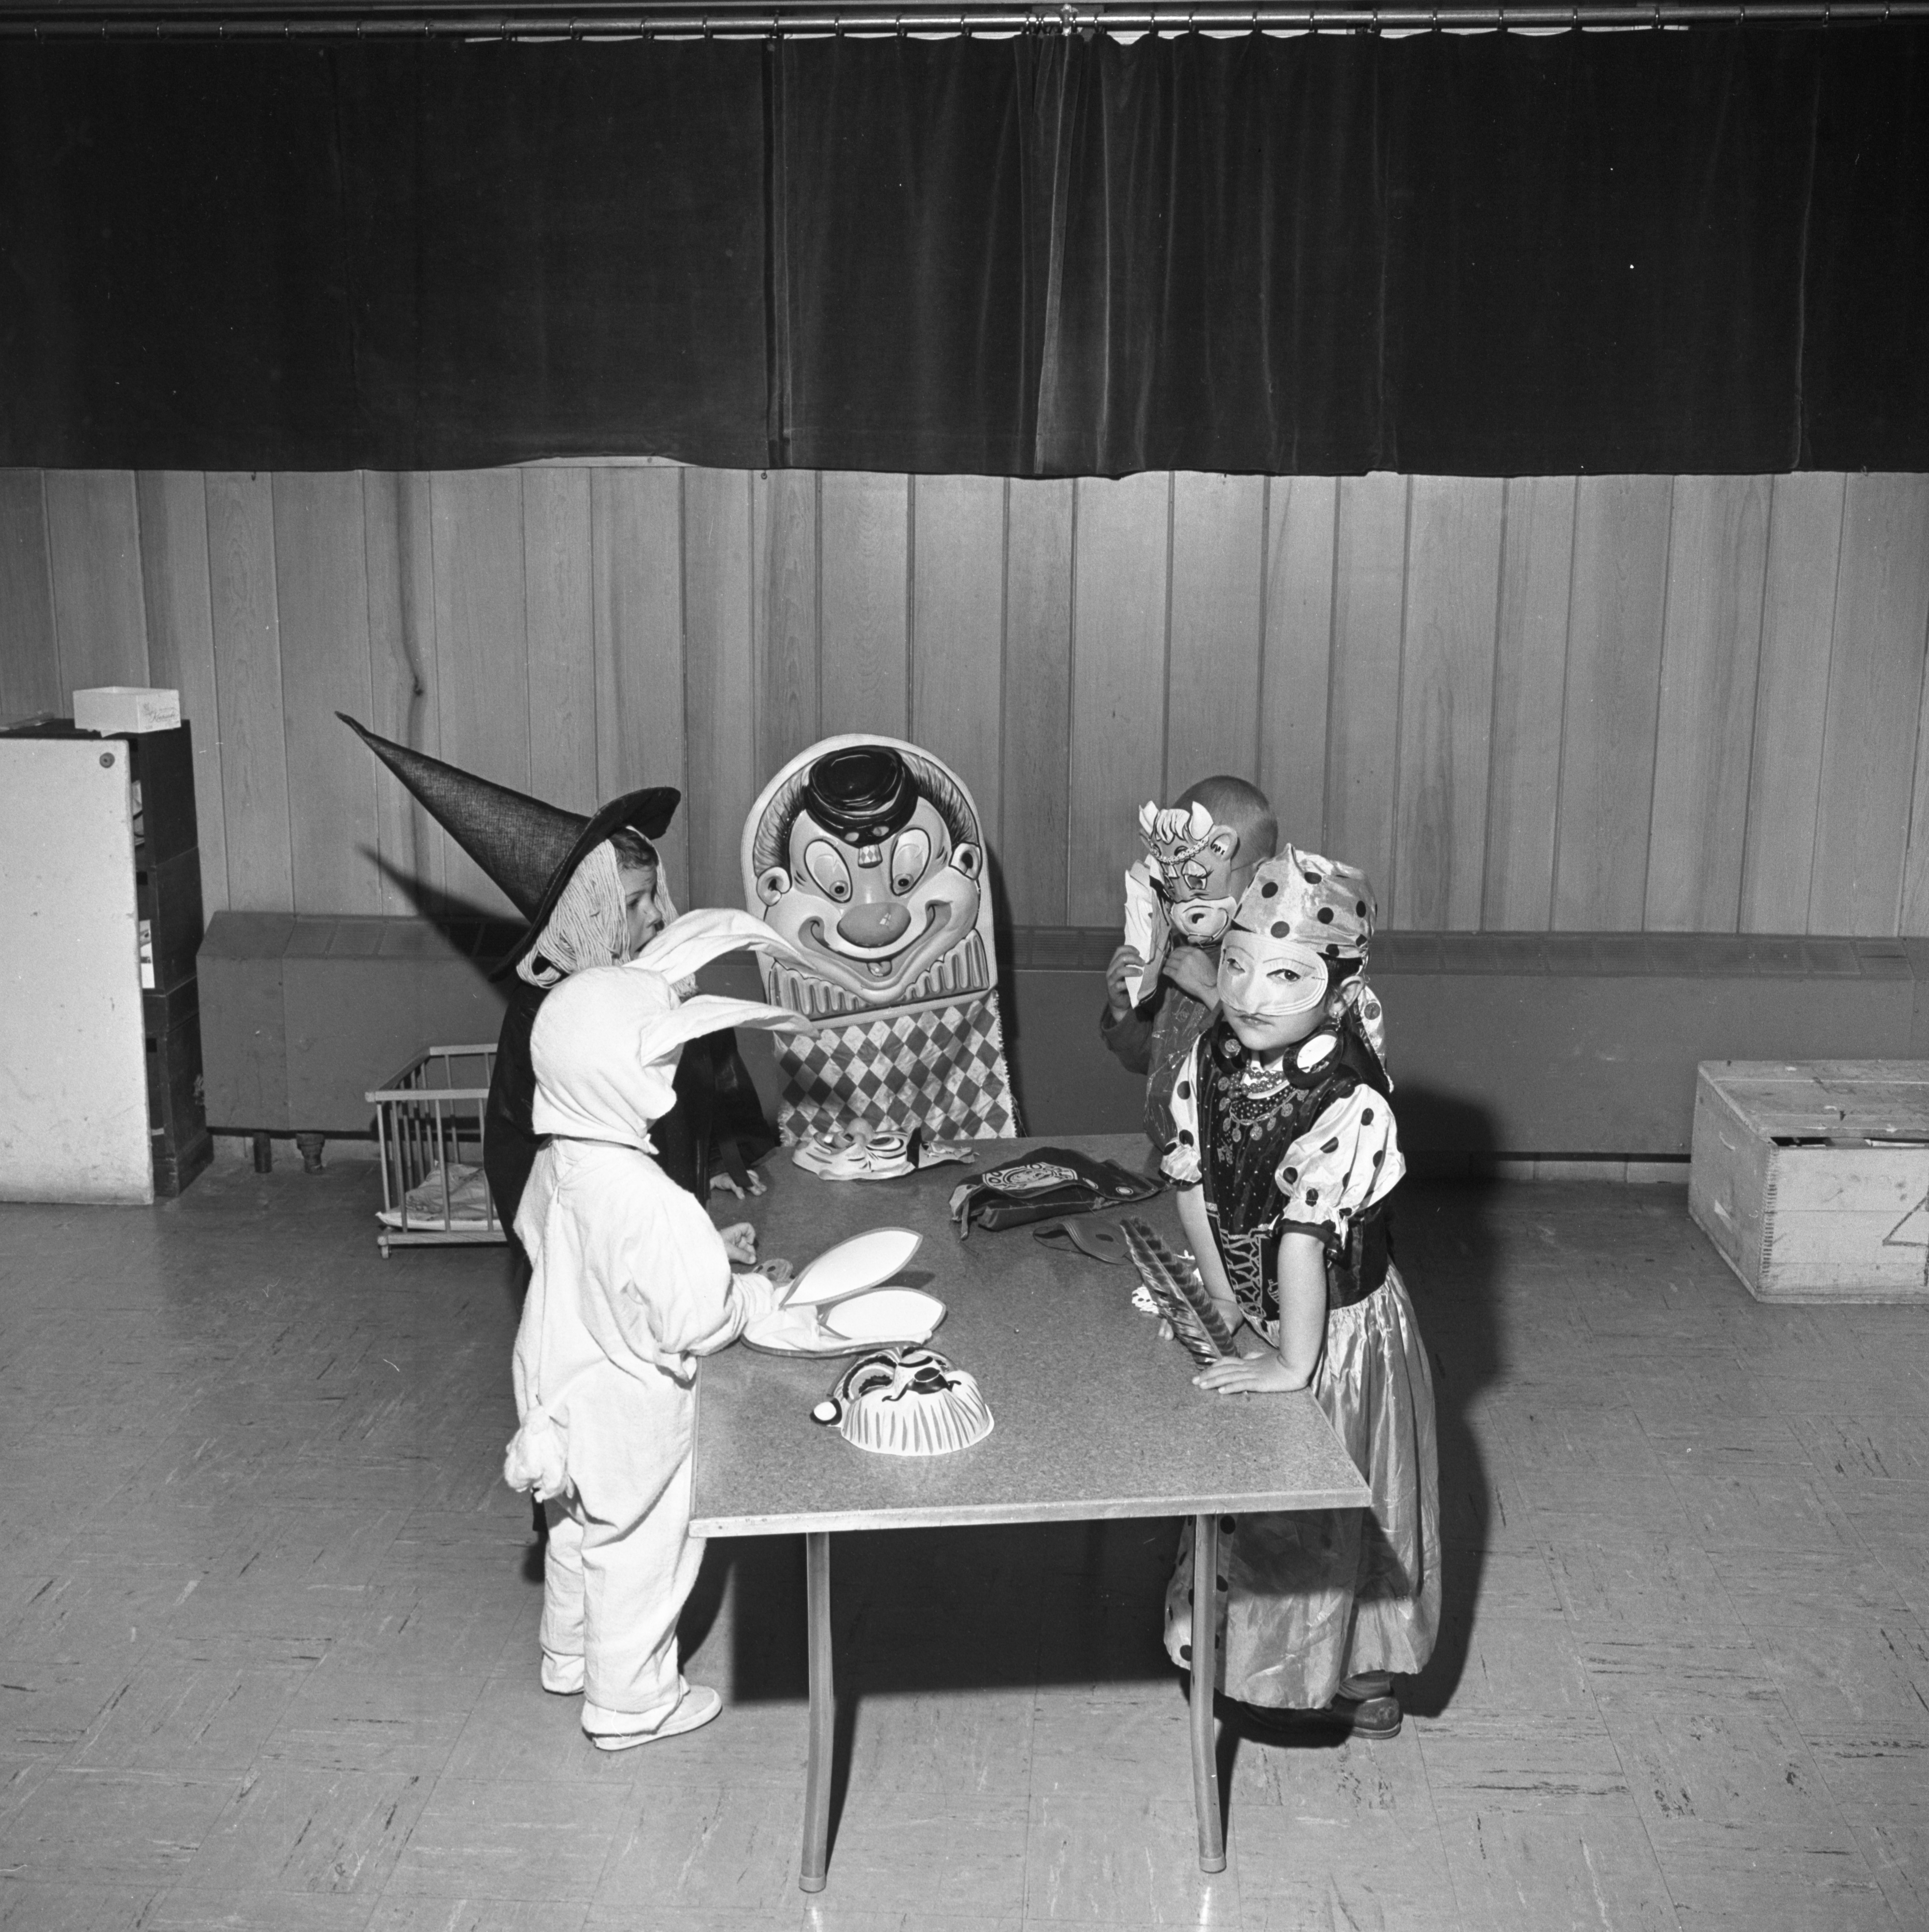 Children At Arbor Way Nursery School Celebrate Halloween, October 1961 image